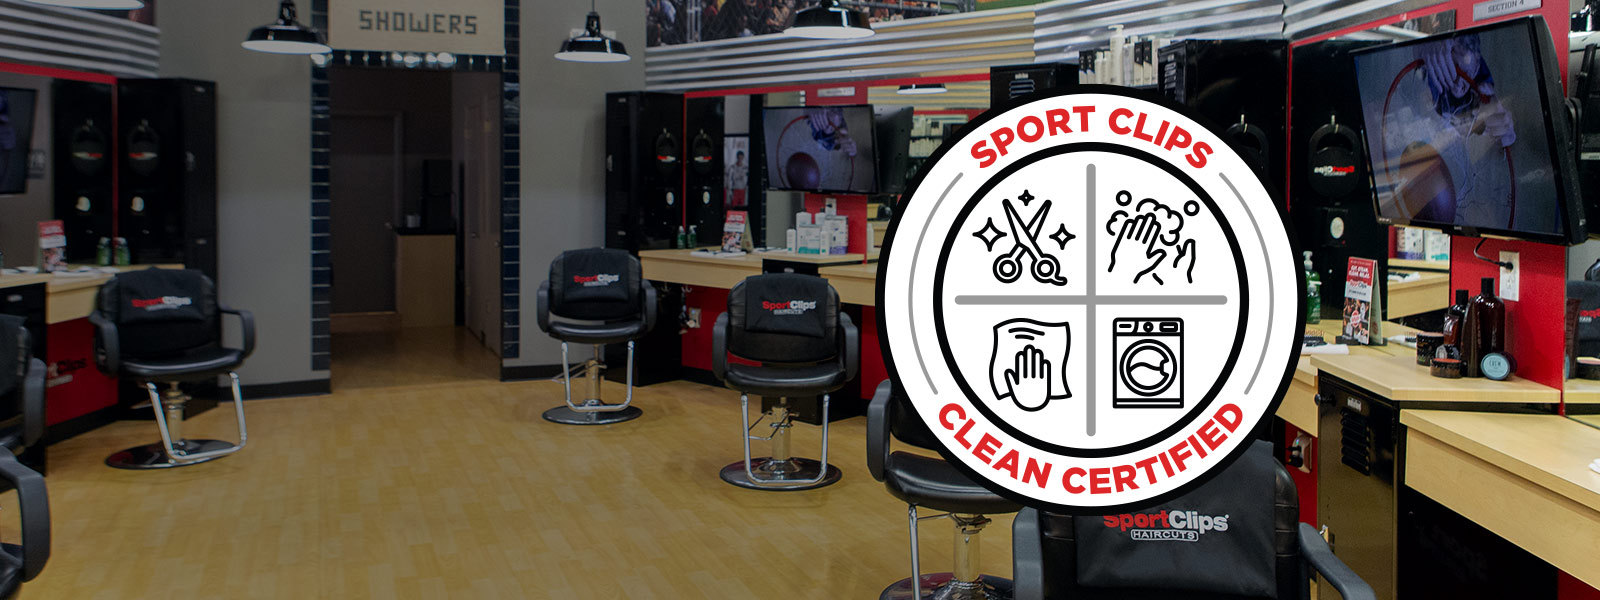 Sport Clips certified clean logo